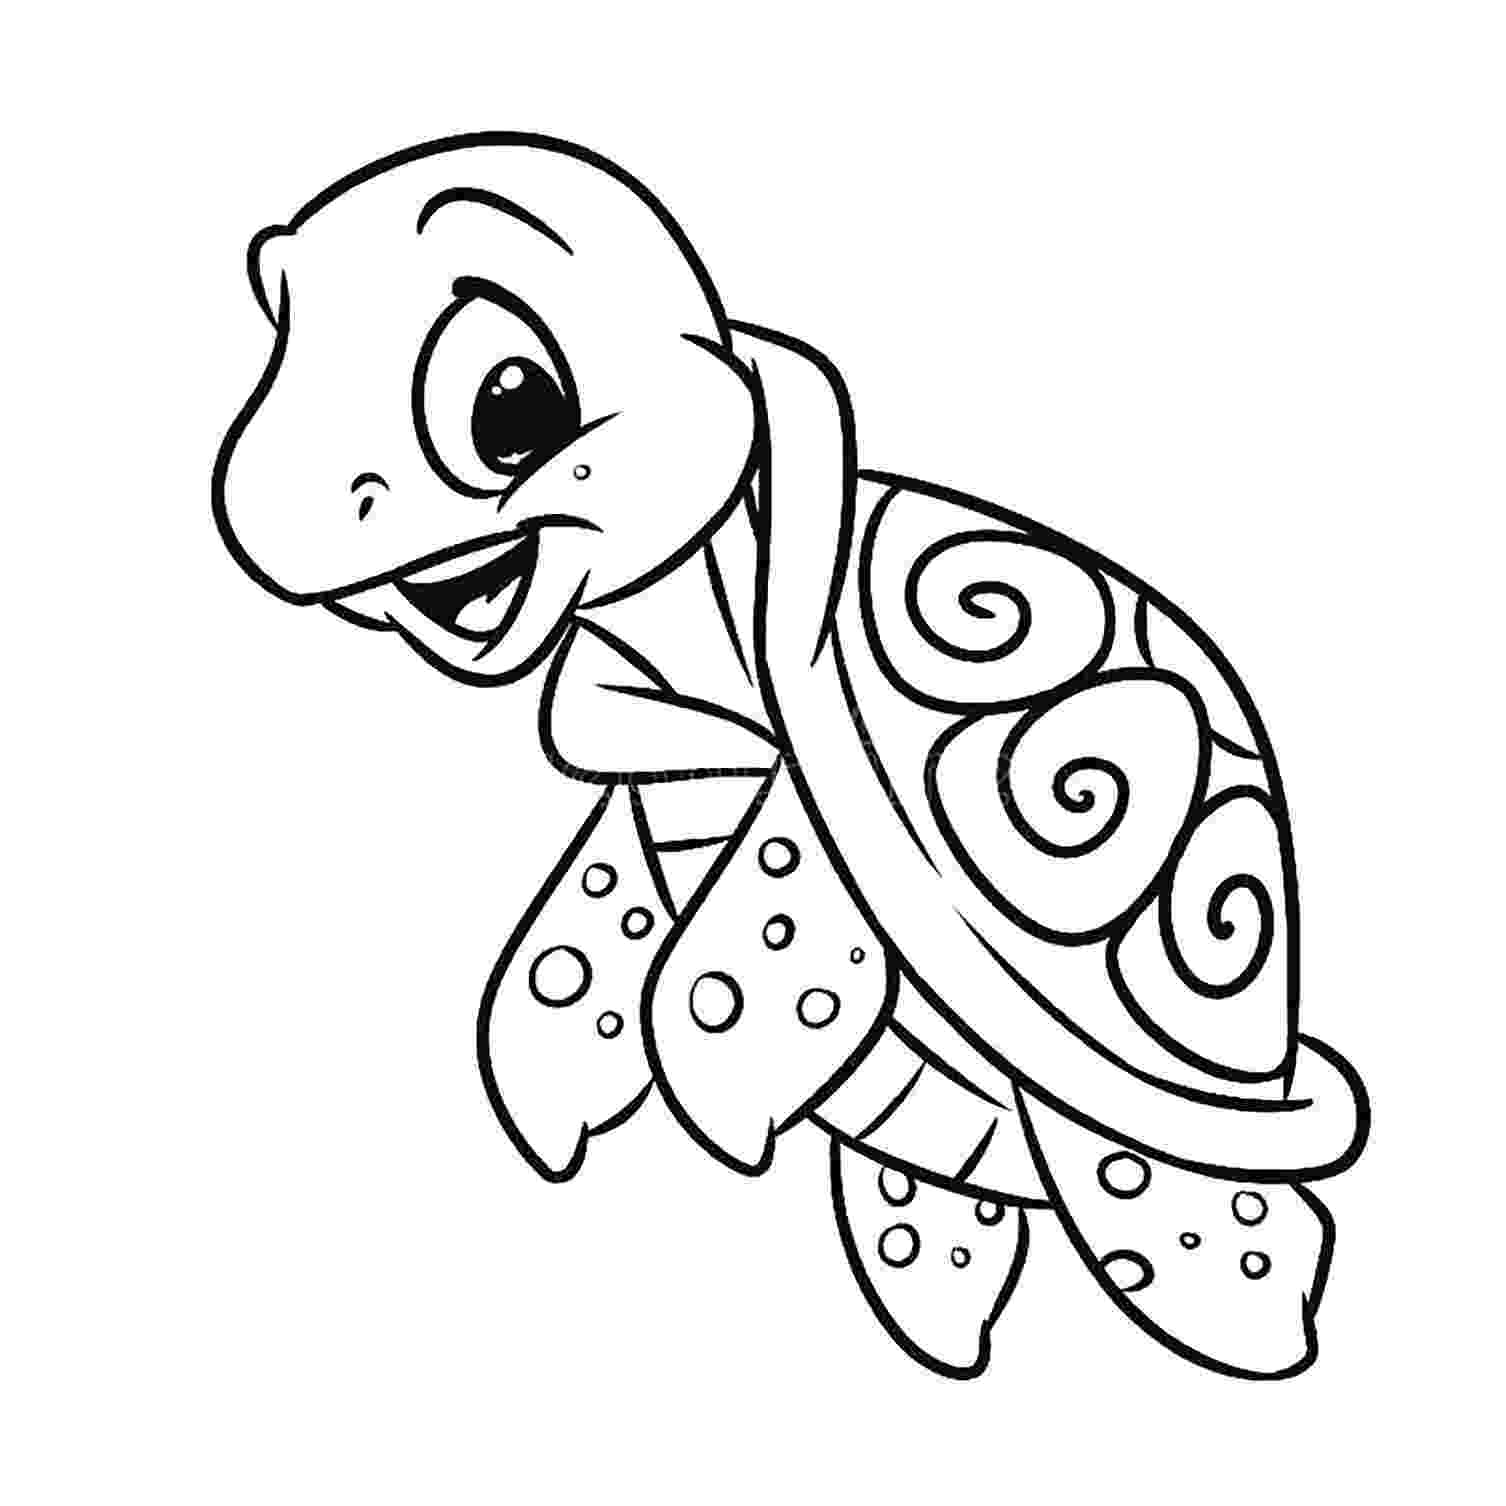 turtle coloring pictures to print 19 turtle templates crafts colouring pages free pictures print coloring turtle to